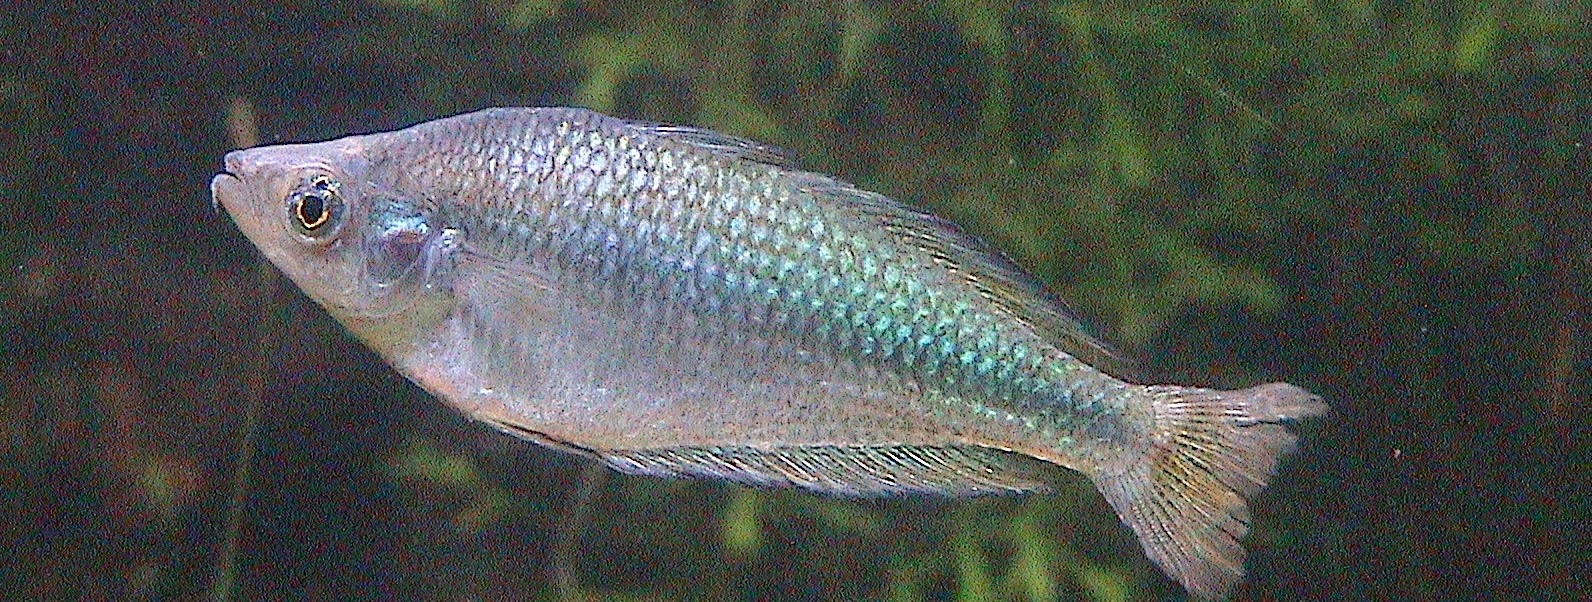 Freshwater frenzy 10 facts about australian rainbowfish for Freshwater fish facts